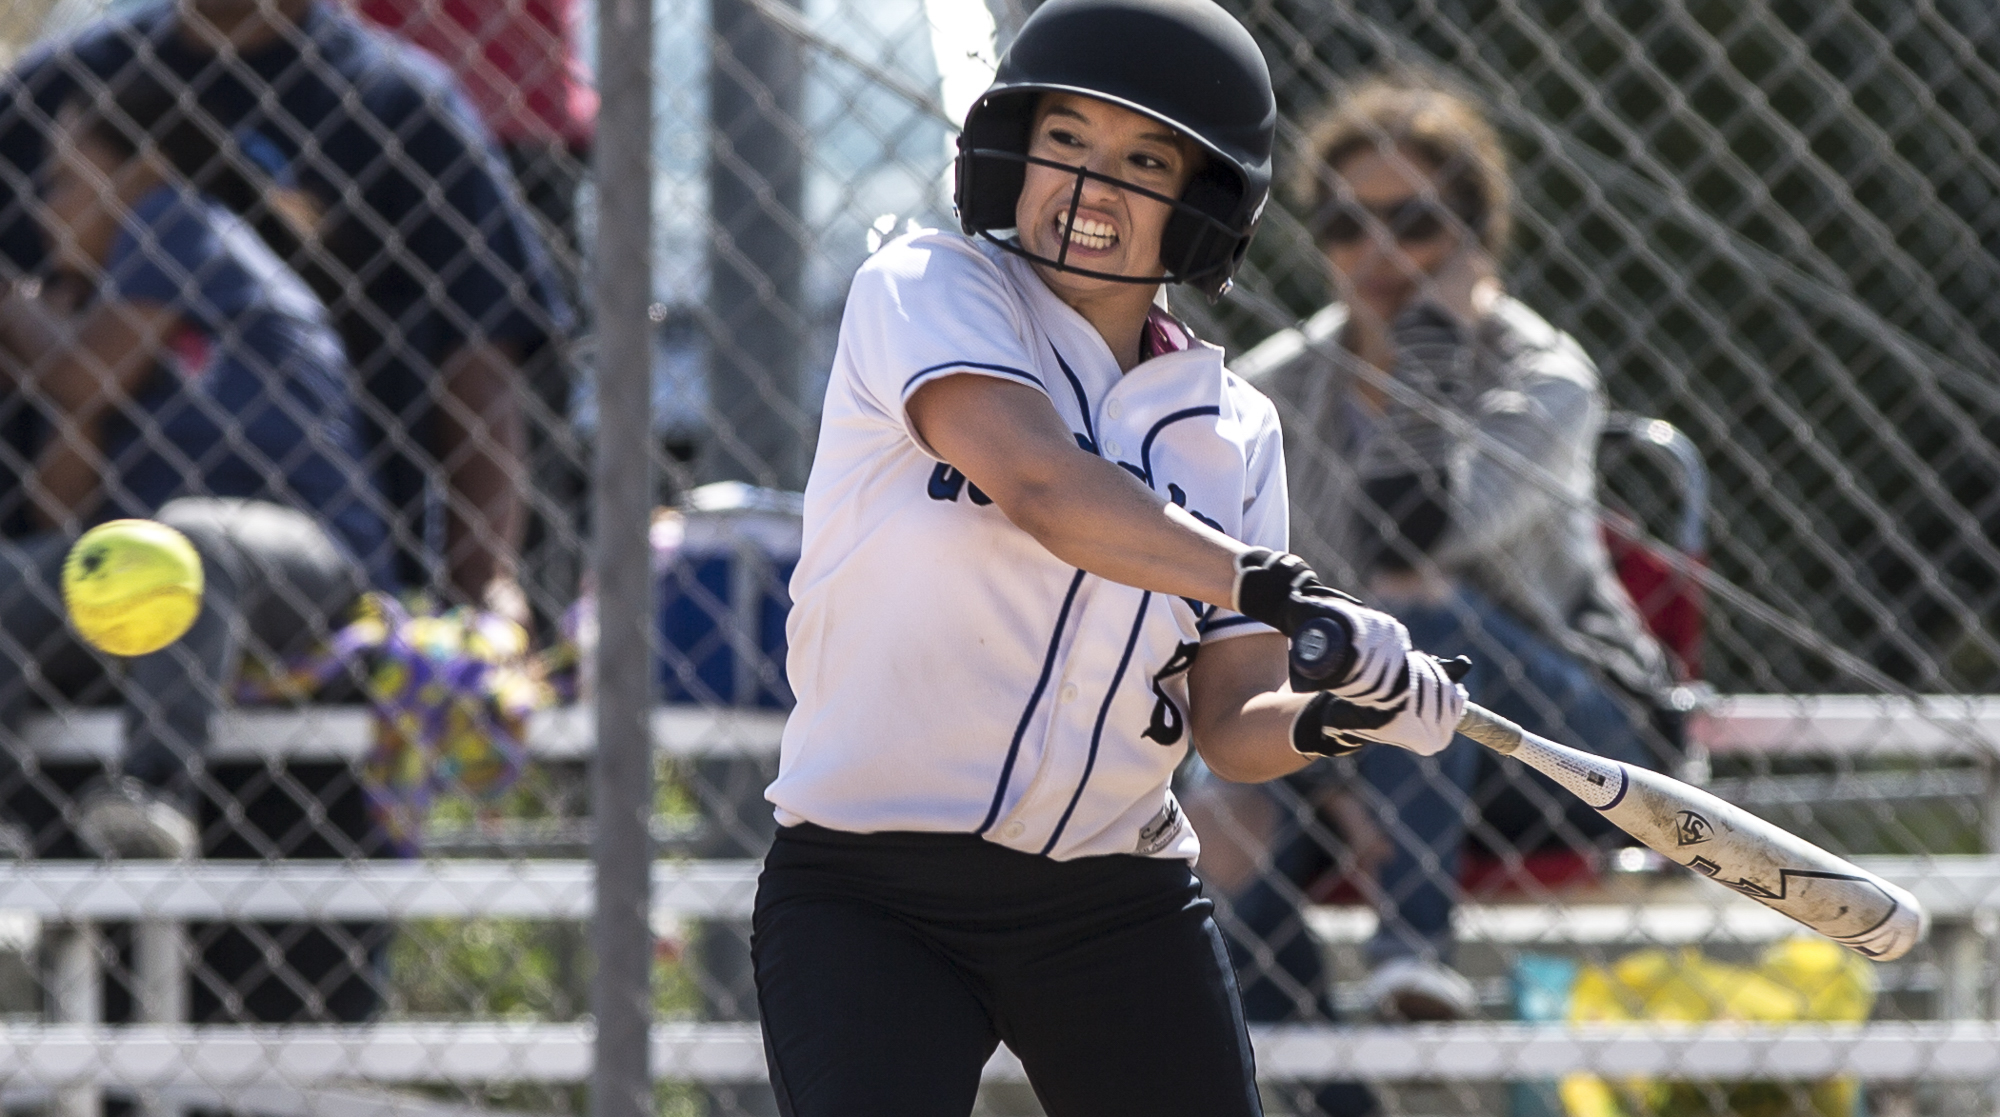 Santa Monica College Corsair freshman batter Ashley Nava prepares to nail a powerful curveball thrown by Cuesta College Cougar pitcher sophomore Taylor Rasmusson at the John Adams Middle School field in Santa Monica California, on Tuesday, April 3 2018. The Santa Monica Corsairs lost 6-5 against the Cuesta College Cougars in the ten-inning softball game. (Matthew Martin/Corsair Photo)